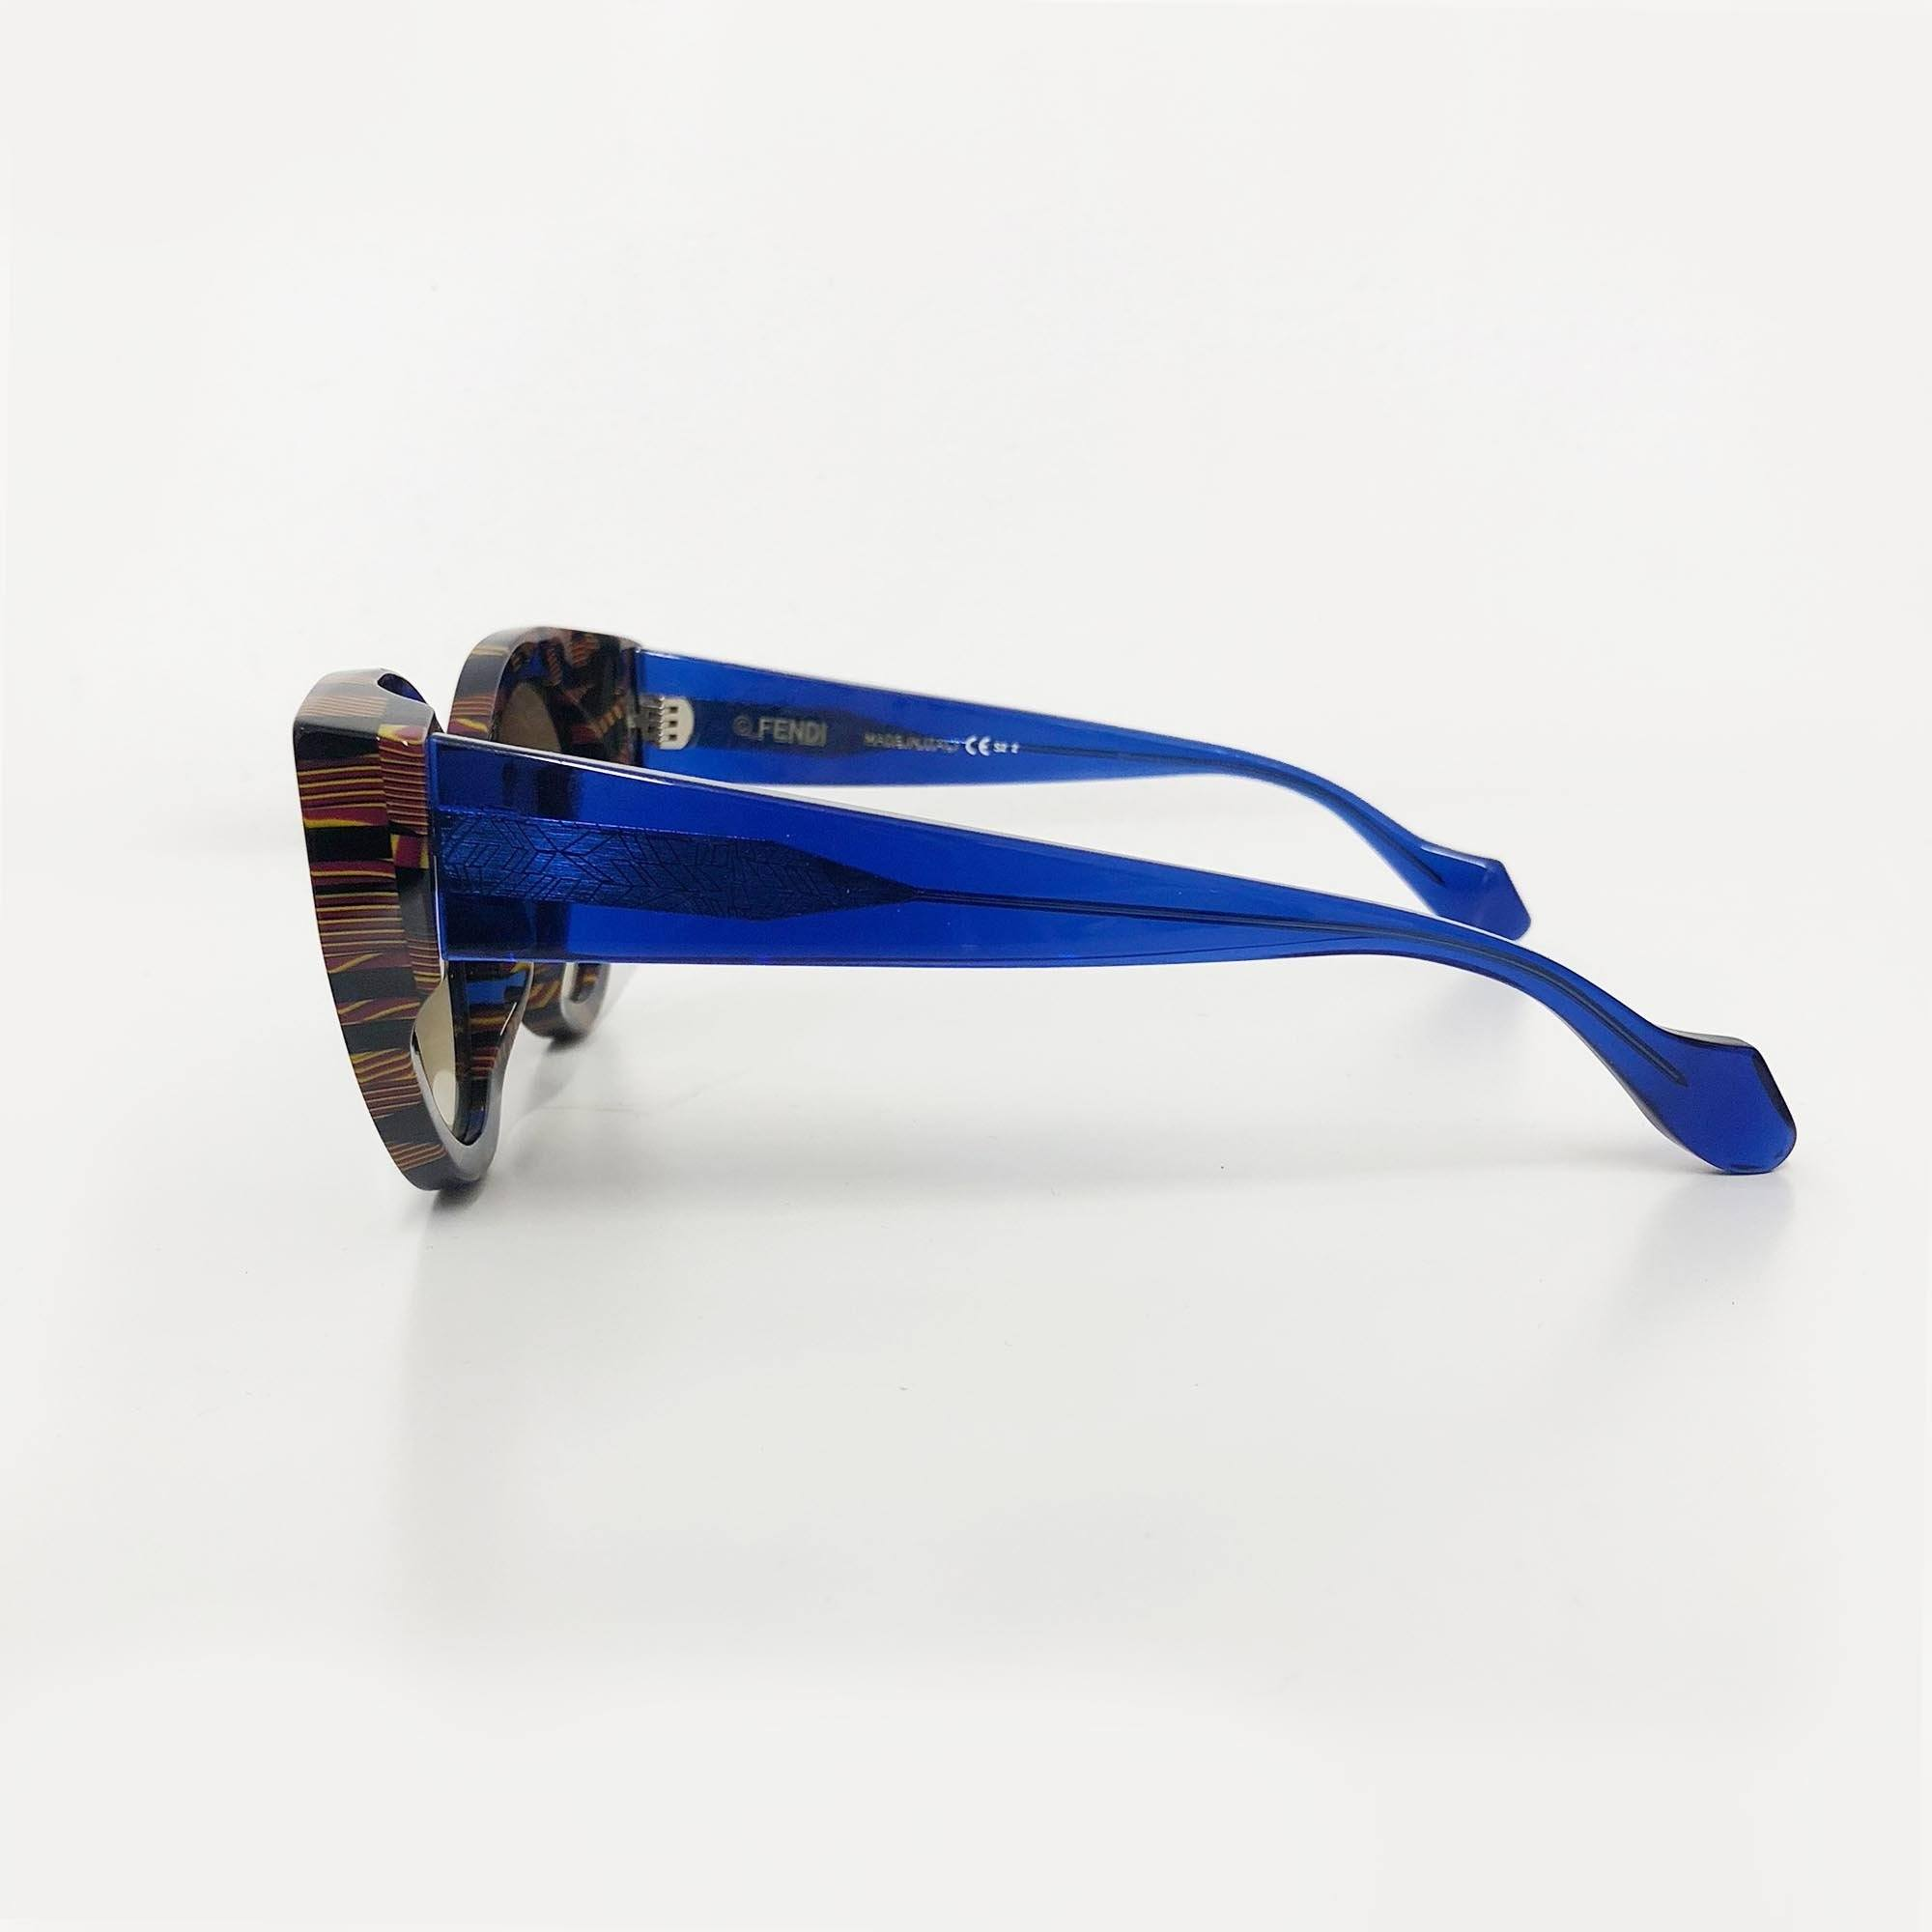 Fendi x Thierry Cat Eye Lasry sunglasses